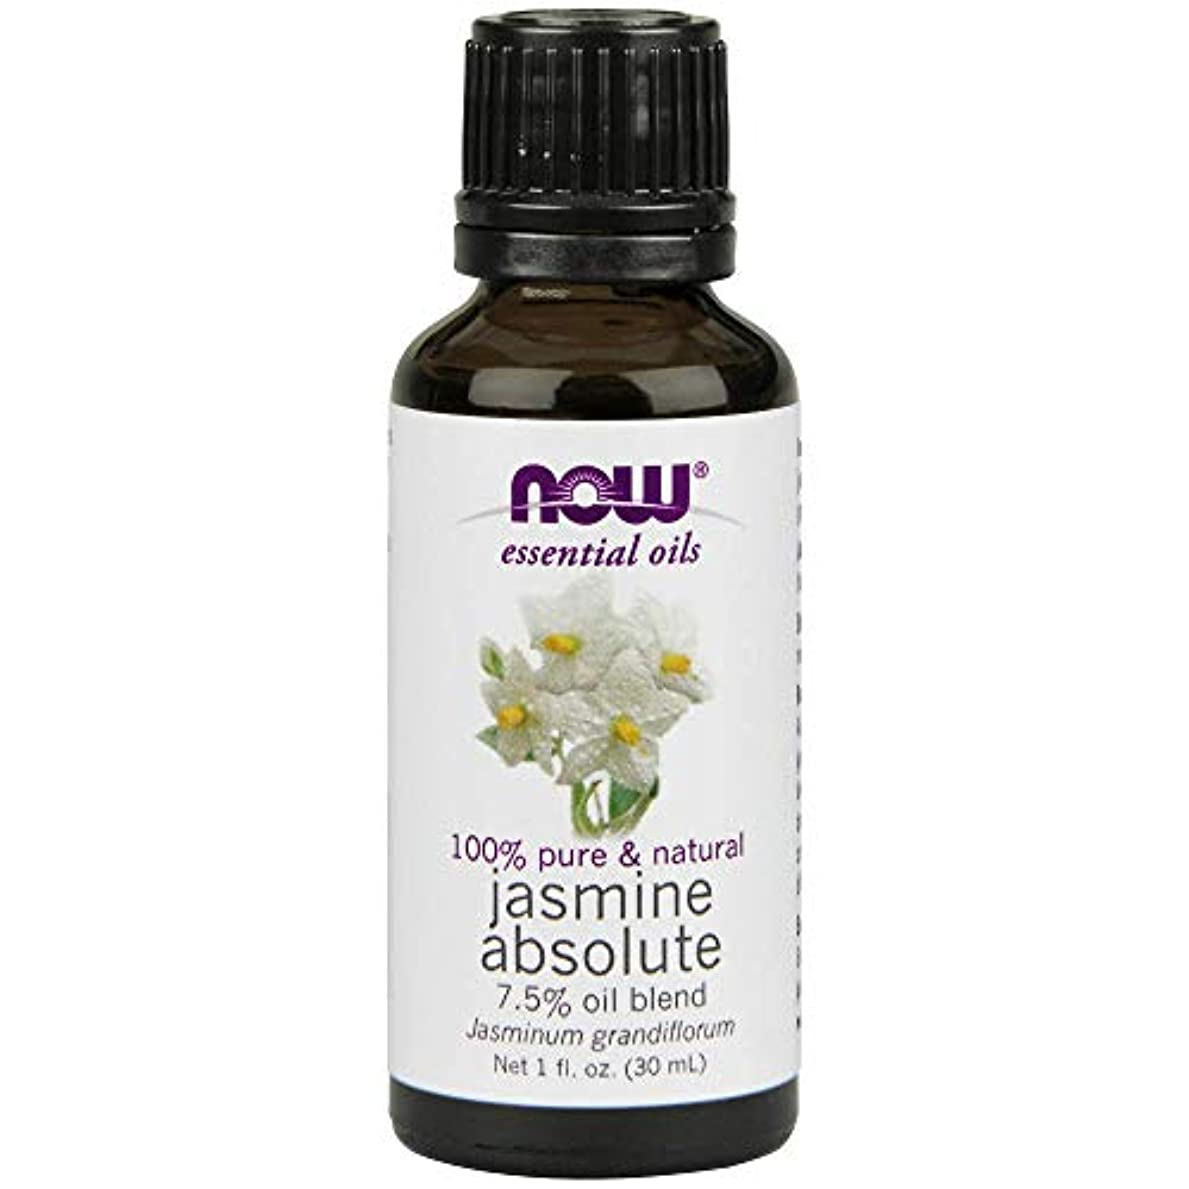 勝つを除く必要性Now - Jasmine Absolute Oil 7.5% Oil Blend 1 oz (30 ml) [並行輸入品]